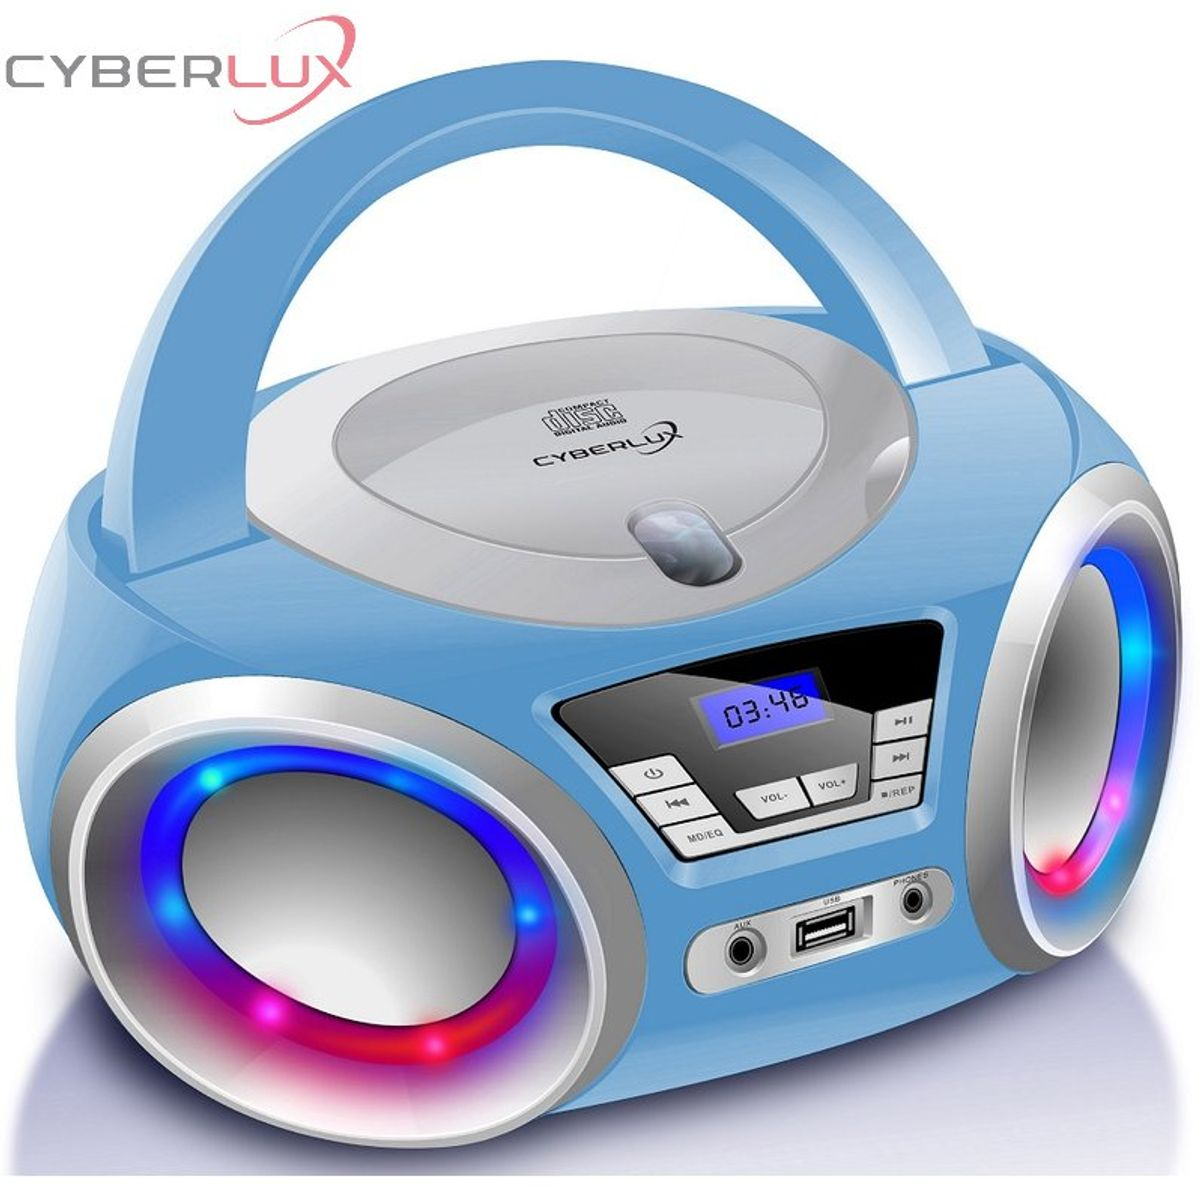 Cyberlux CD-Player mit LED-Beleuchtung in Pink